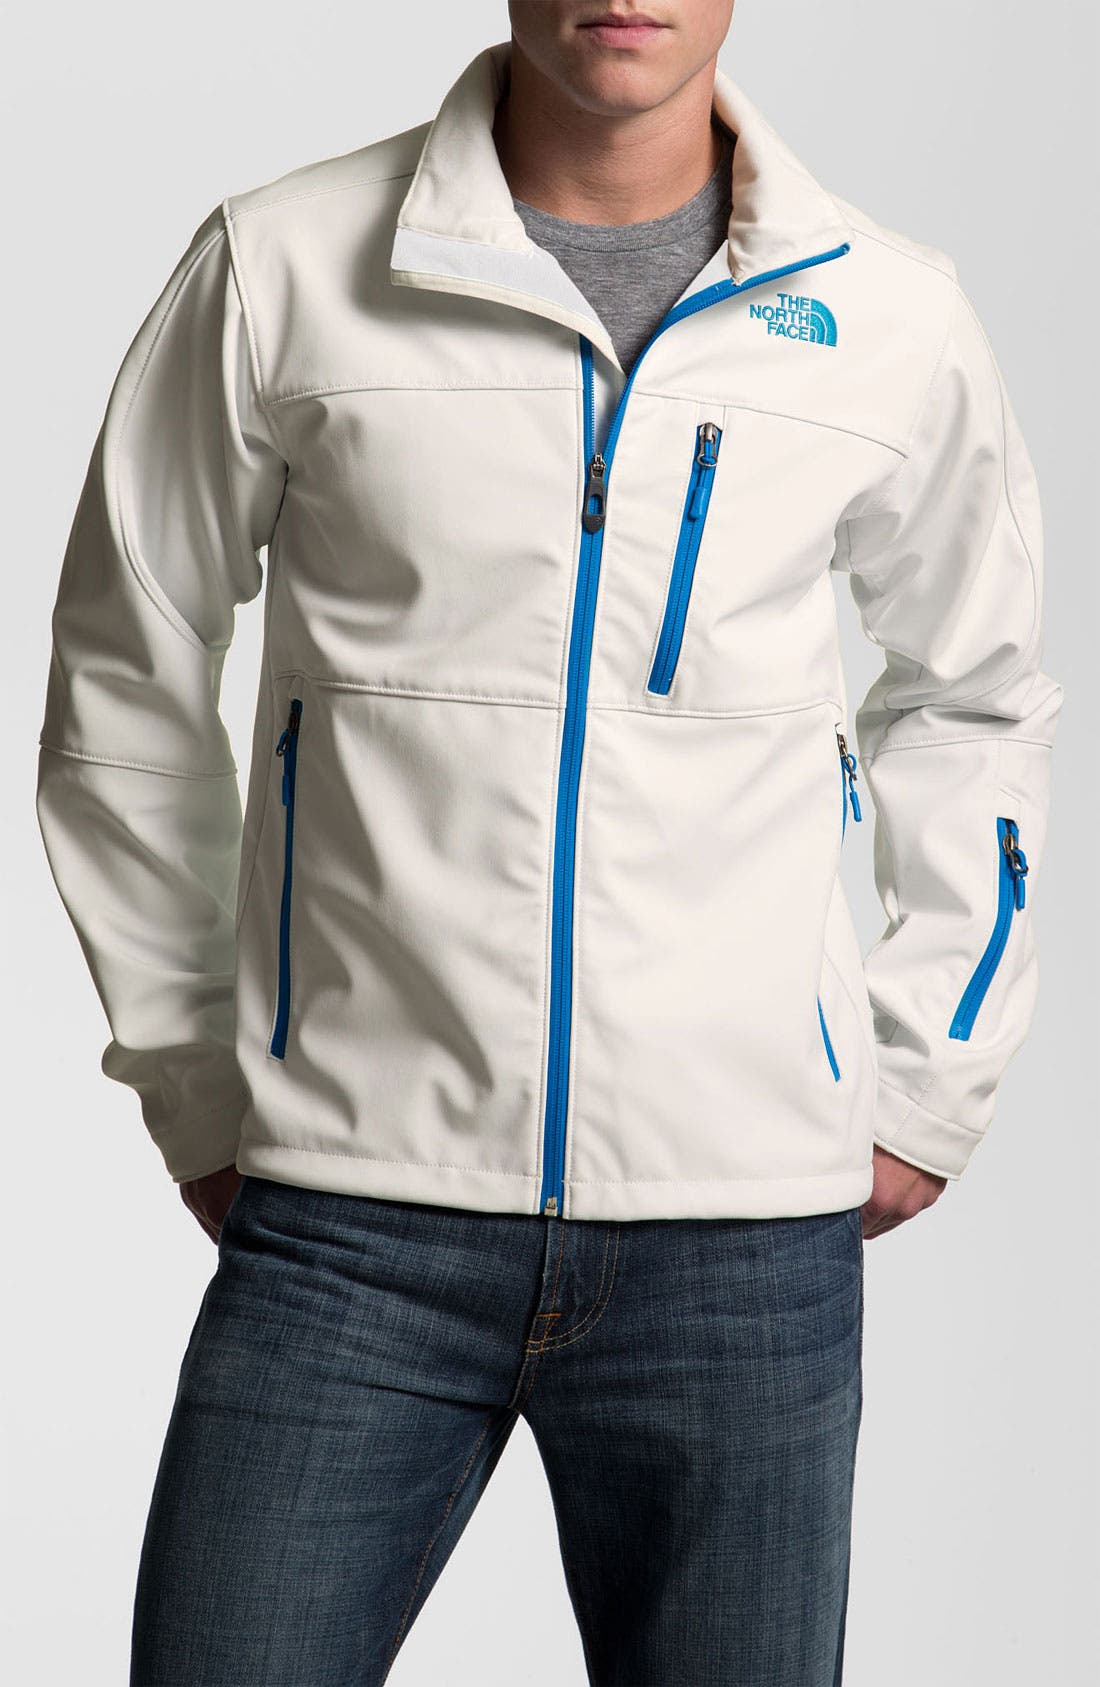 Main Image - The North Face 'Palmyra' Jacket